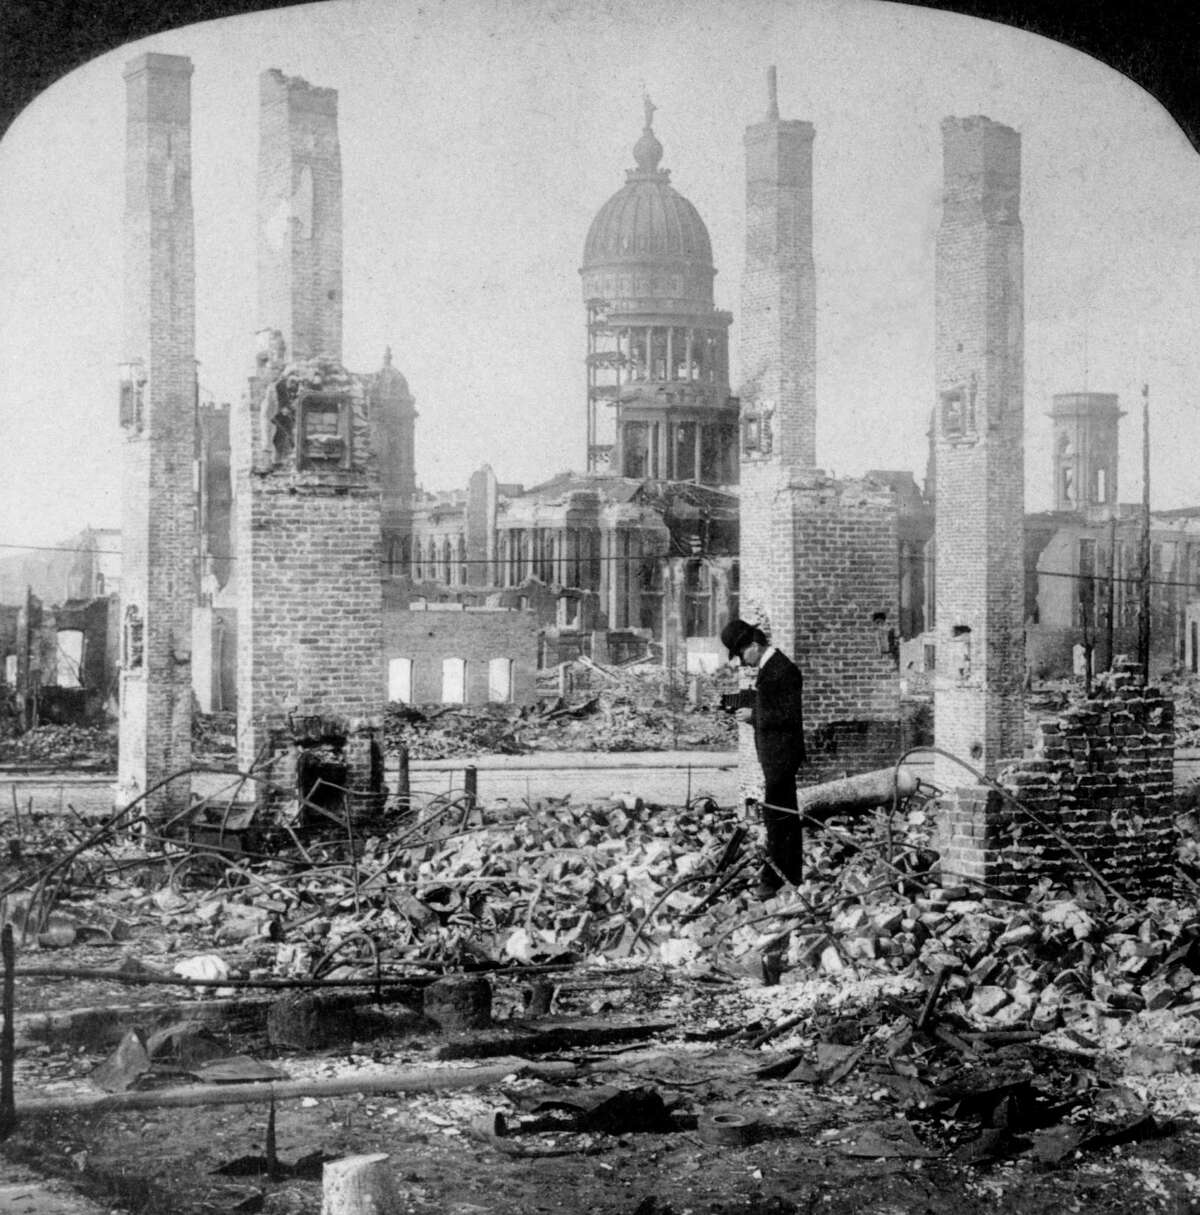 1906: A man photographs the ruins of a building block in front of the remains of City Hall after the earthquake.